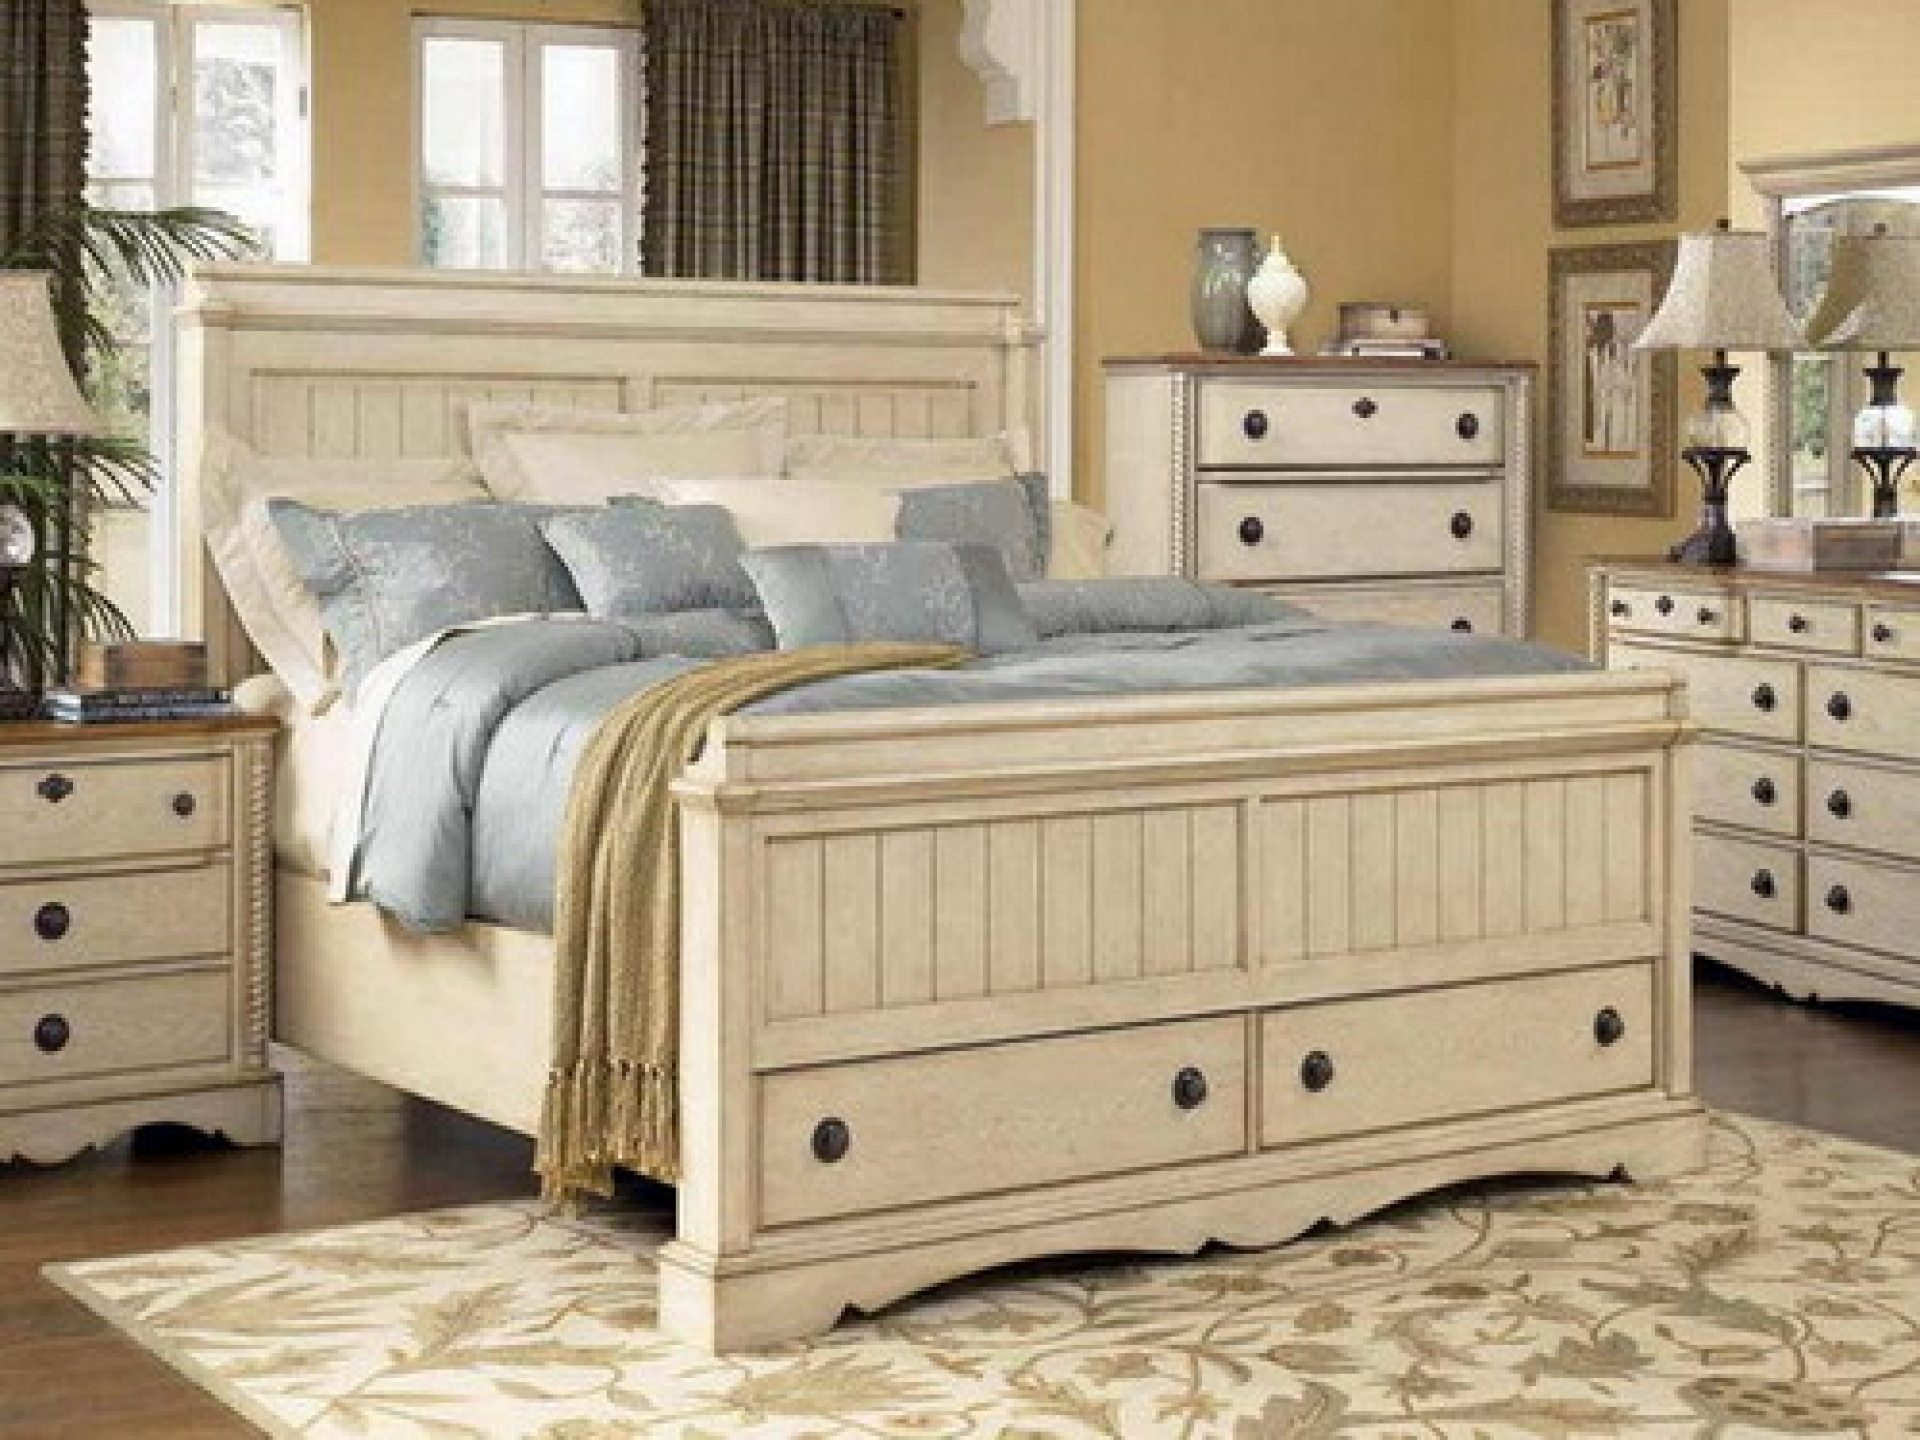 Image of: Rustic Off White Bedroom Furniture